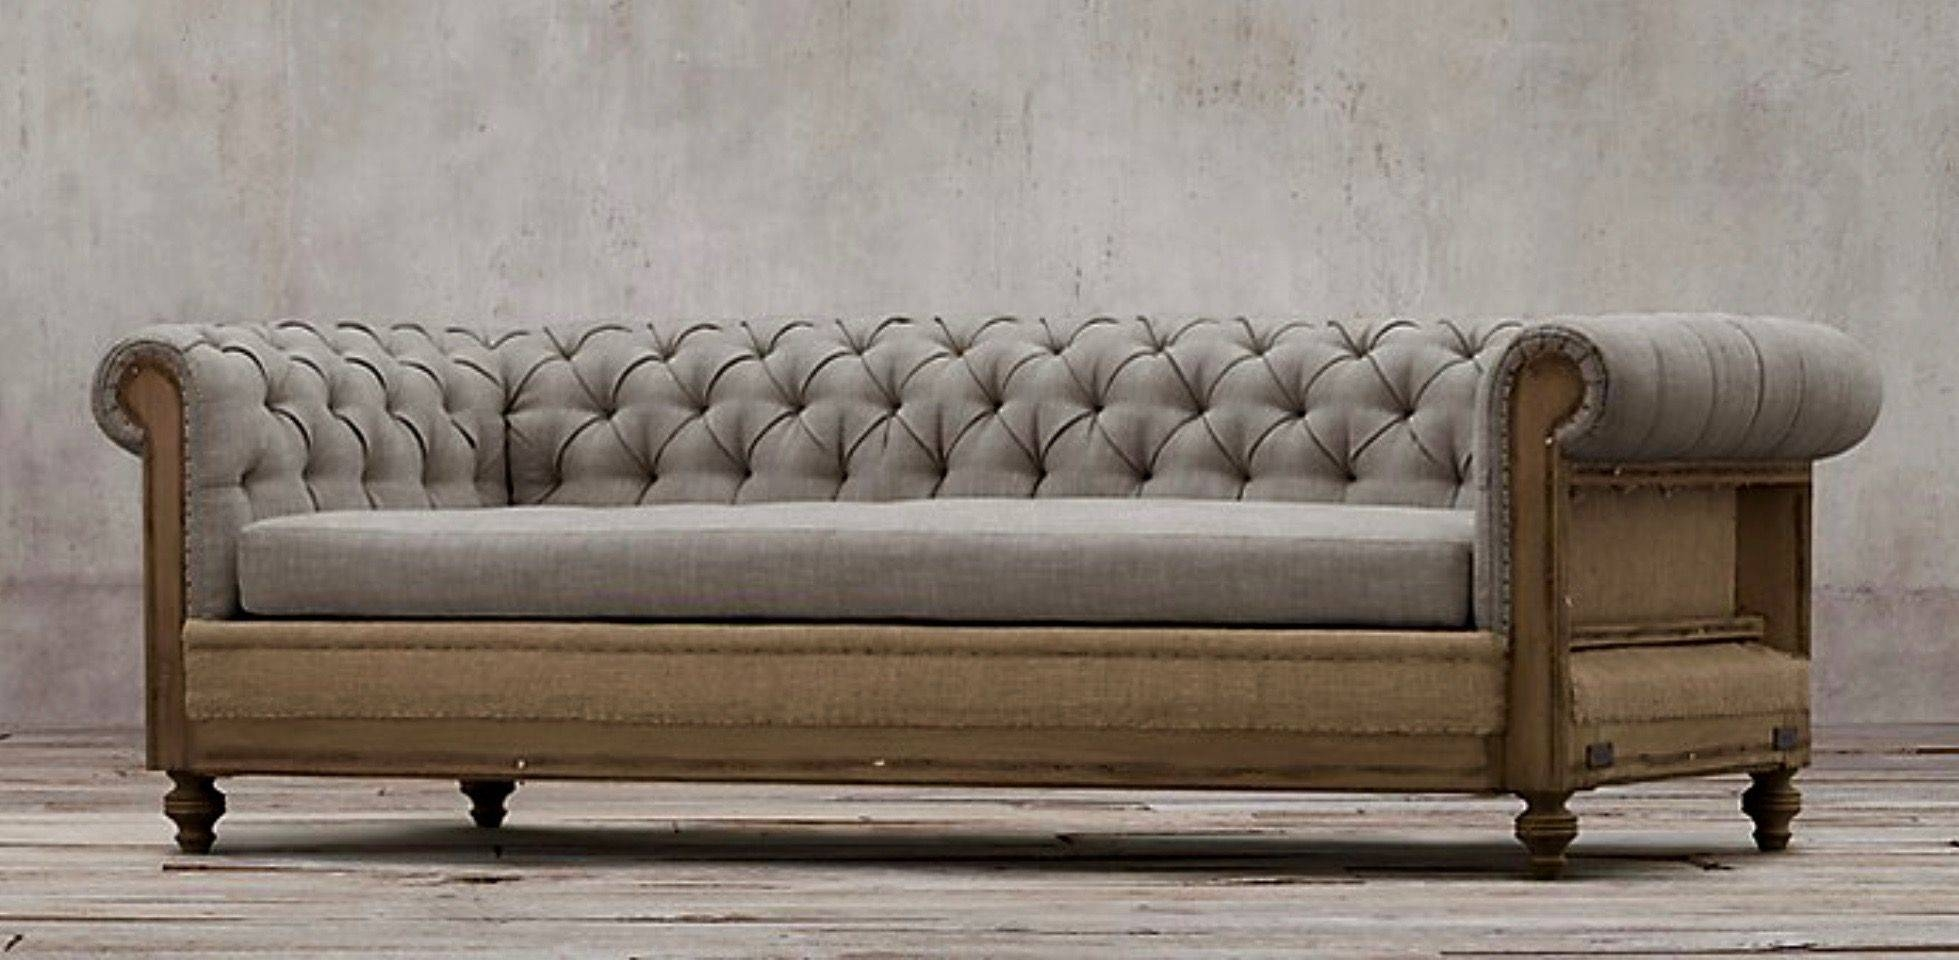 Deconstructed Chesterfield Sofa with regard to Chesterfield Furniture (Image 21 of 30)